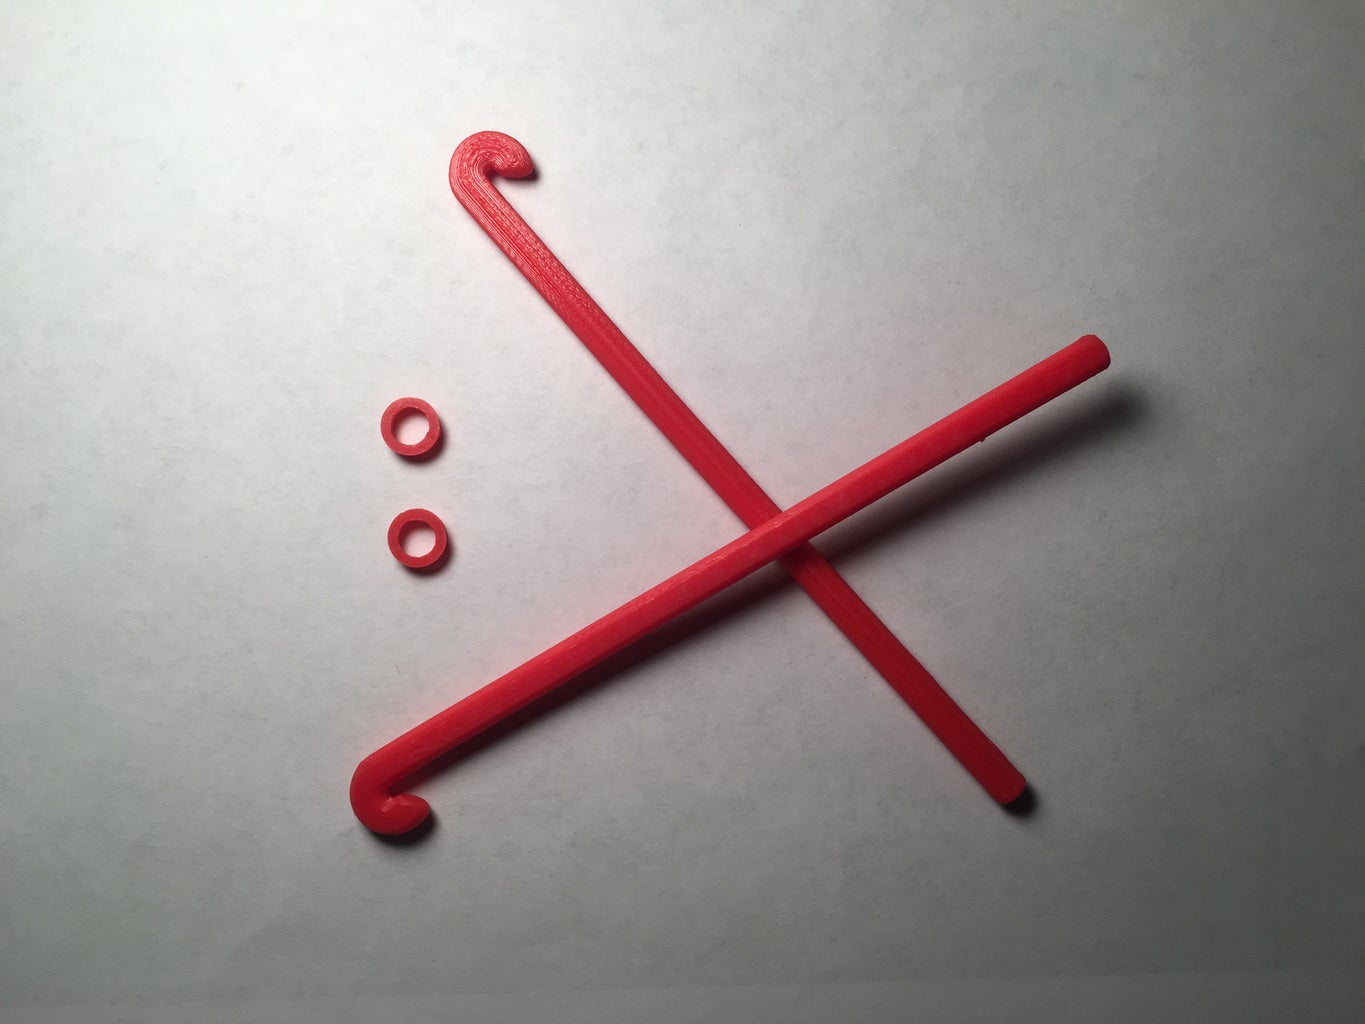 Printing, Assembling, and Using Easy Tie